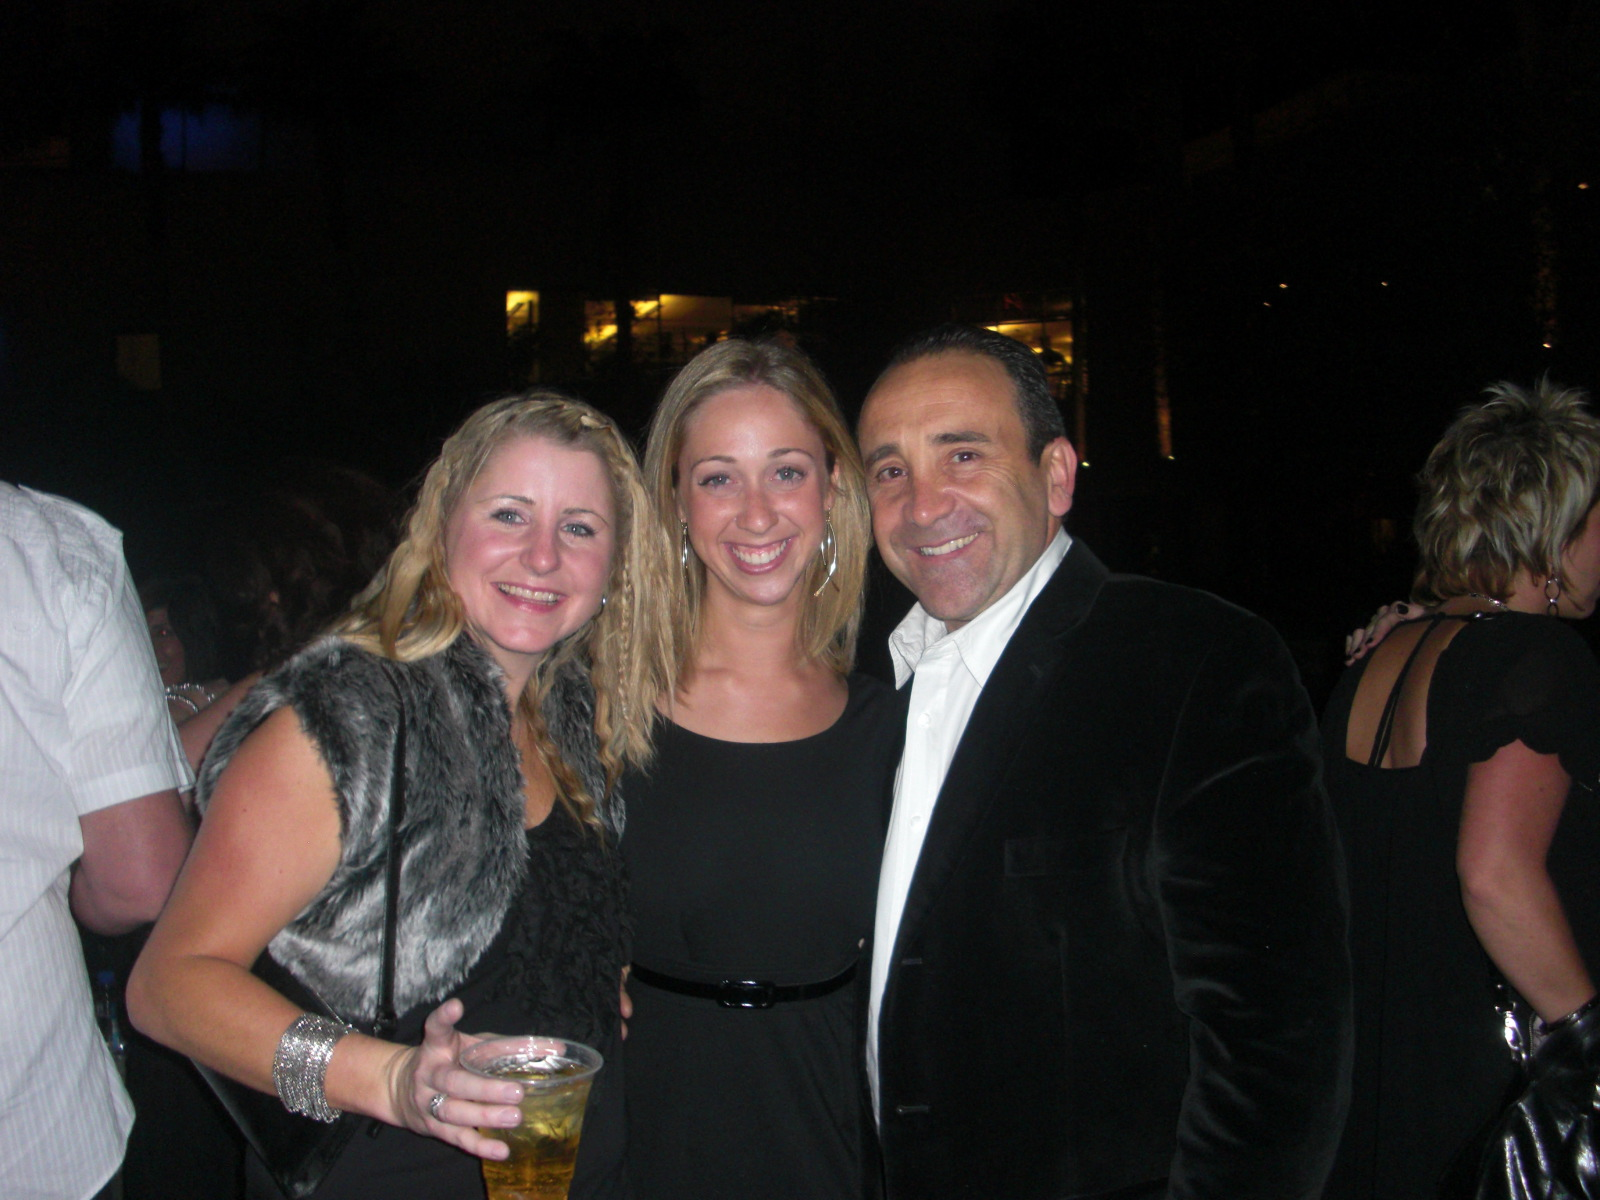 Me being flanked by Goldwell Media Relations Manager Paige Fadden and Mario Argenti, President/CEO of KPSS North America